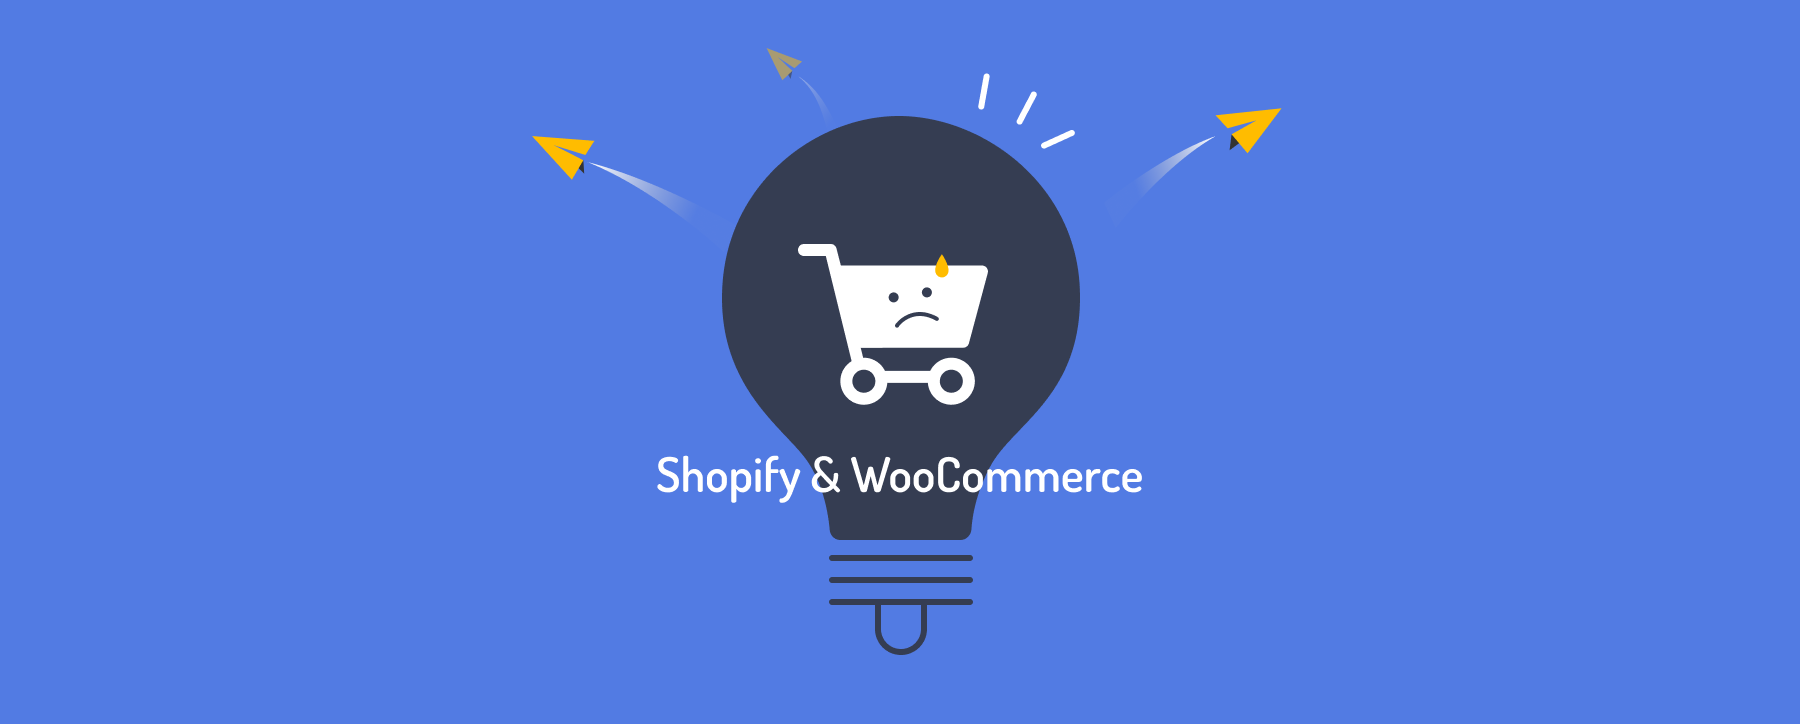 7 Abandoned Cart Recovery Email Ideas For Shopify And WooCommerce